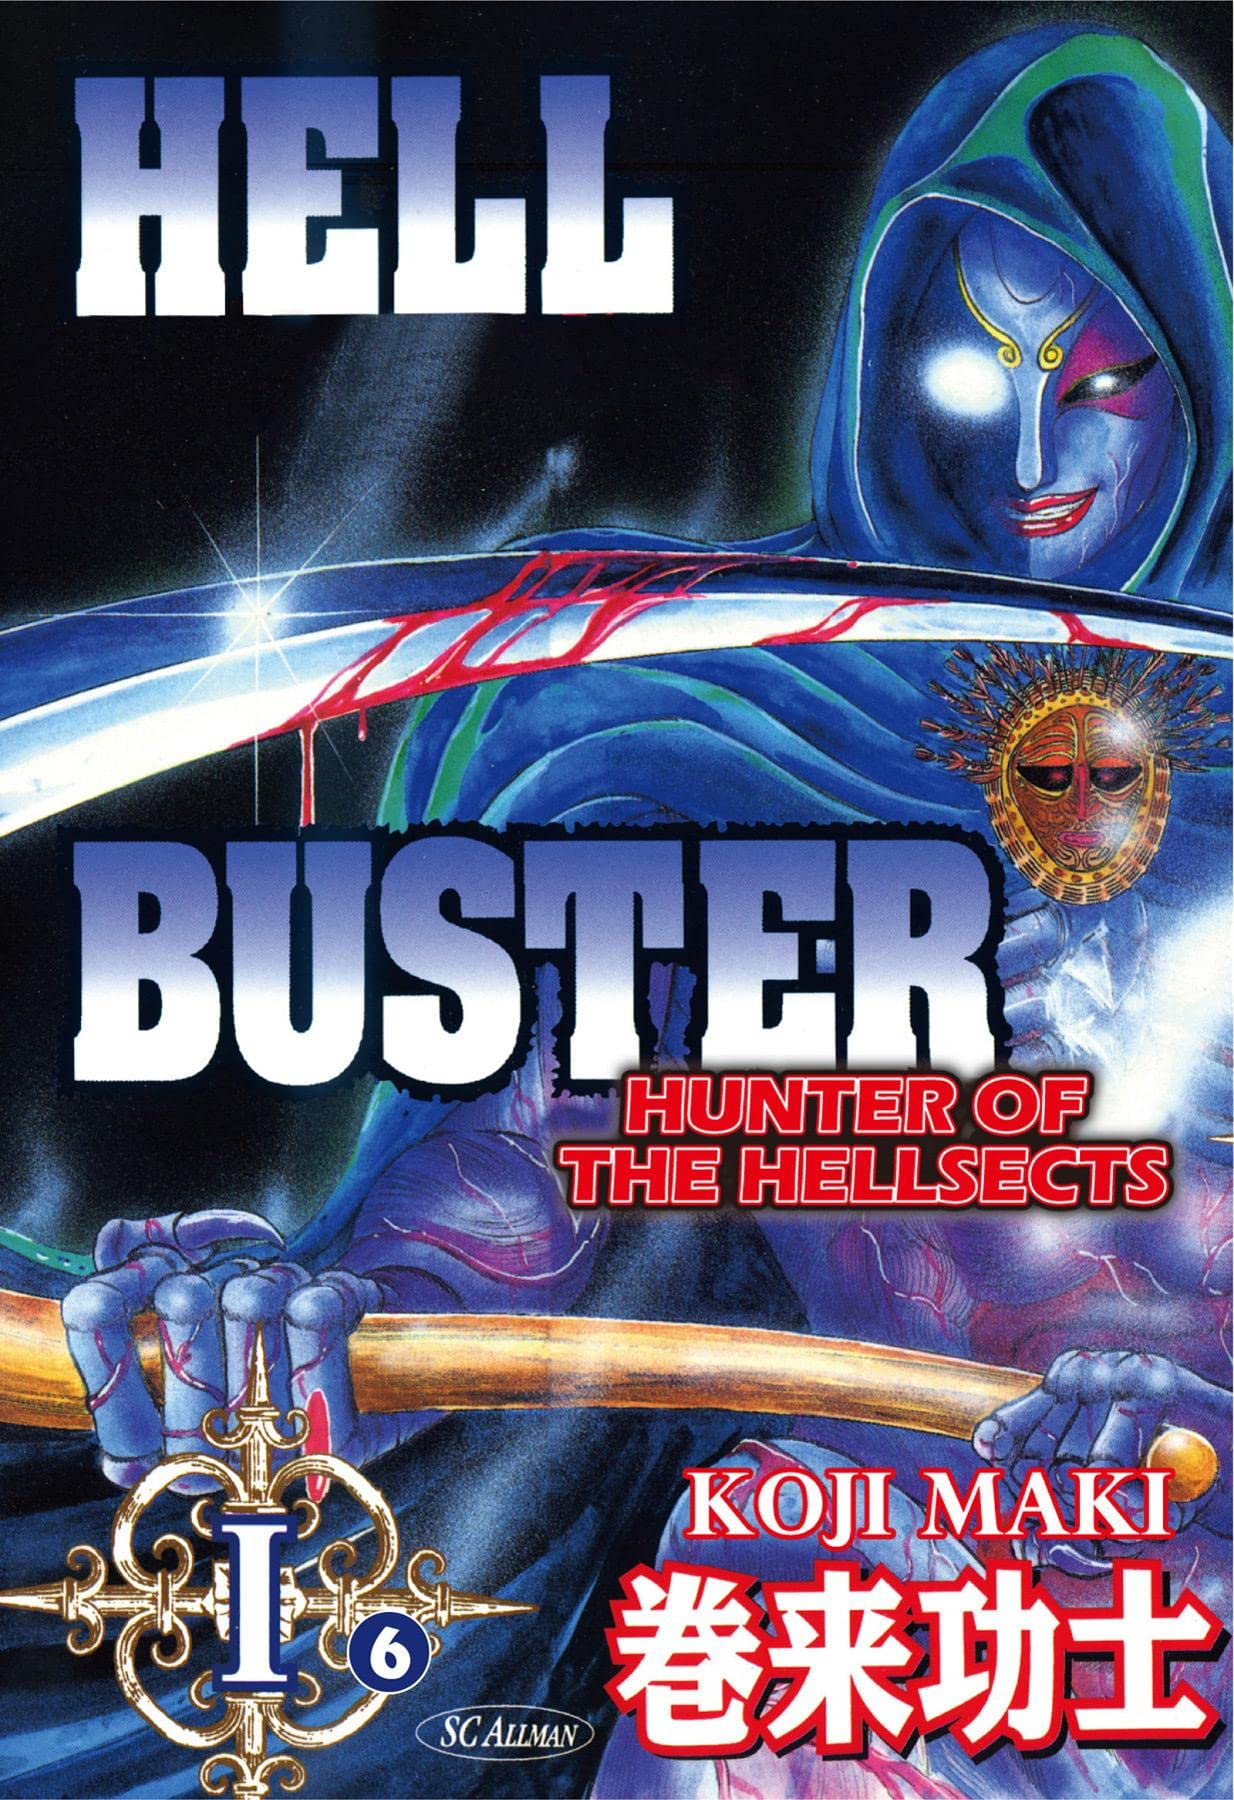 HELL BUSTER HUNTER OF THE HELLSECTS #6